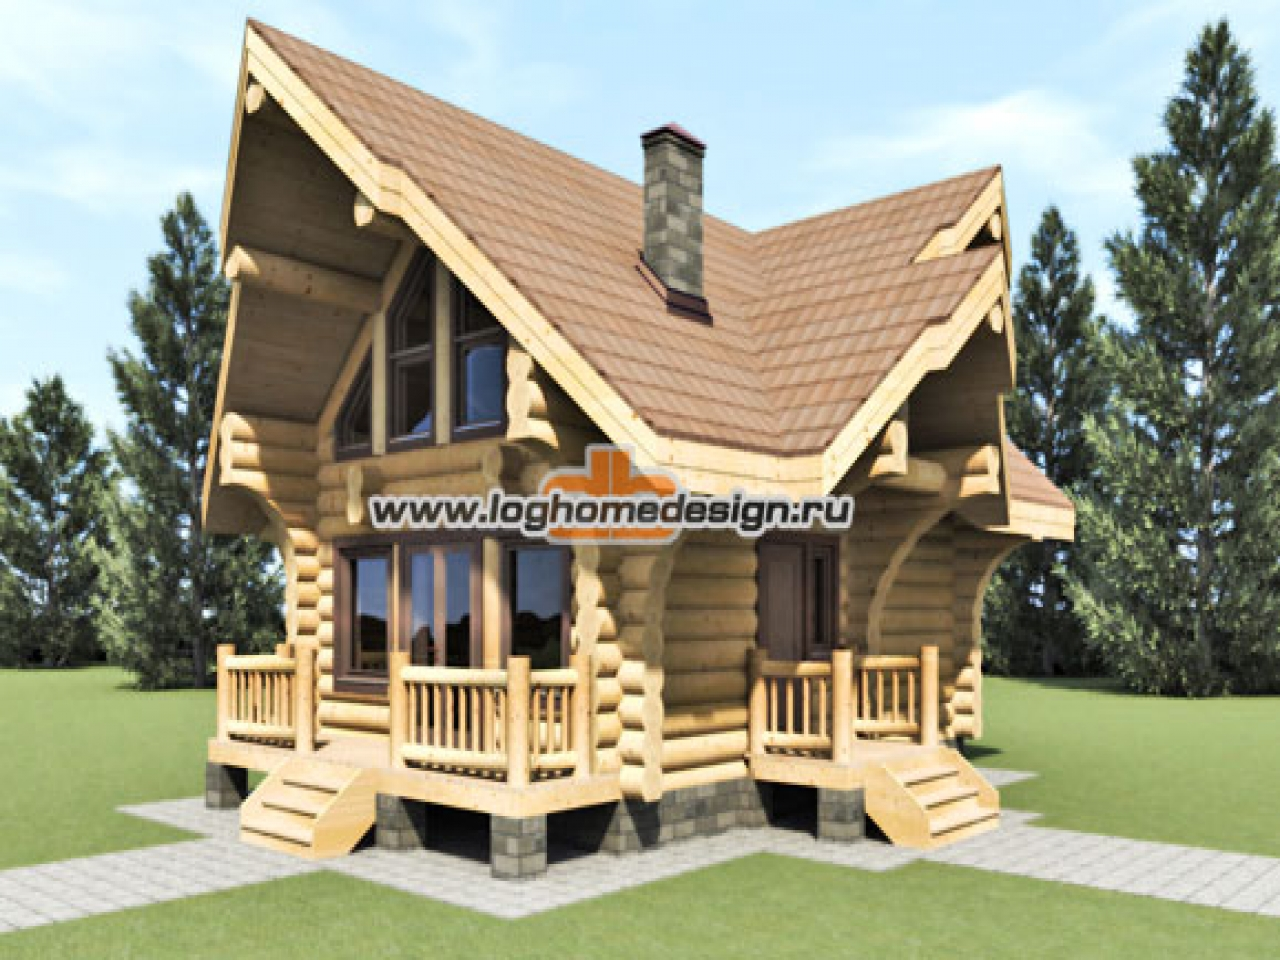 Log cabin cottage home designs rustic log cabin kits log for Rustic log home kits